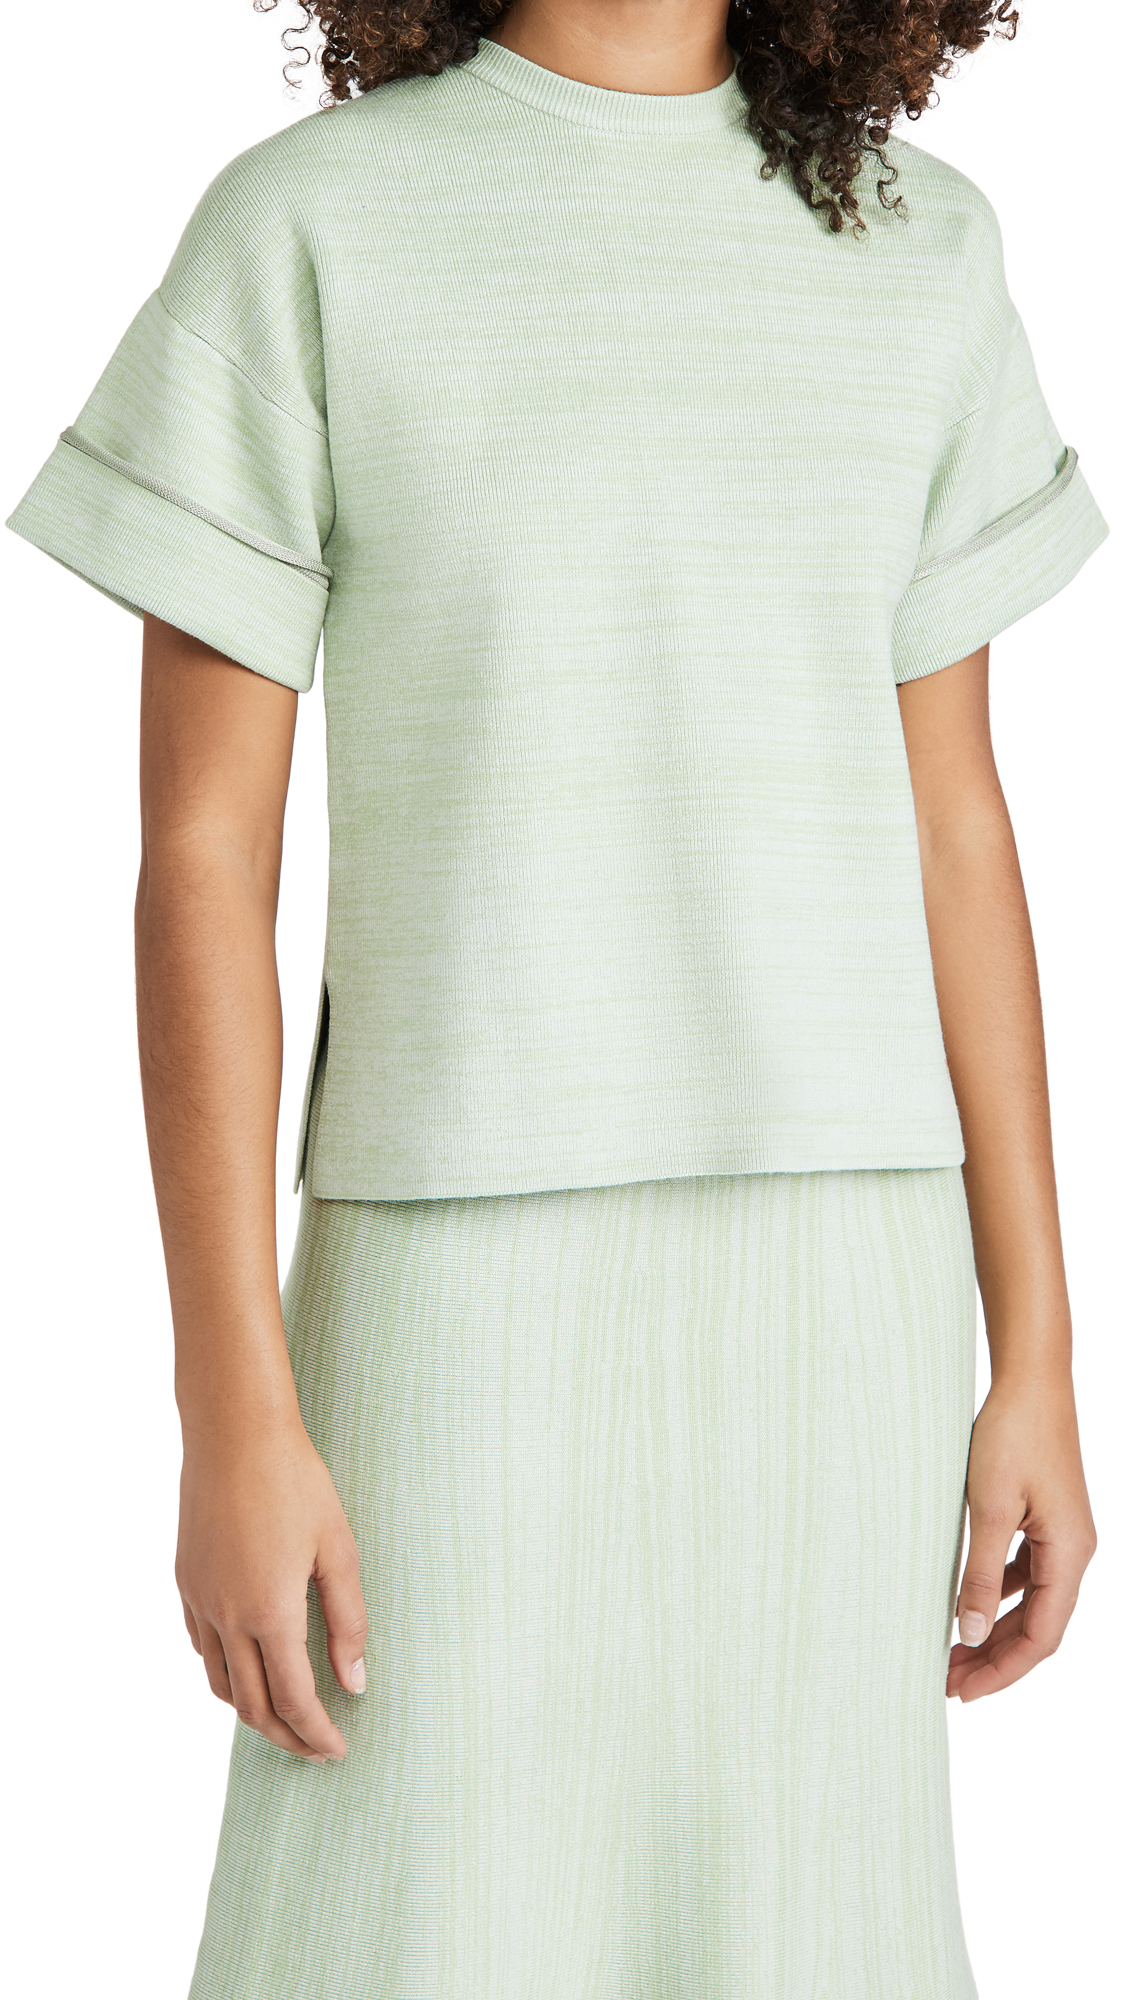 Victoria Victoria Beckham BOXY SOFT VISCOSE BLEND T-SHIRT TOP